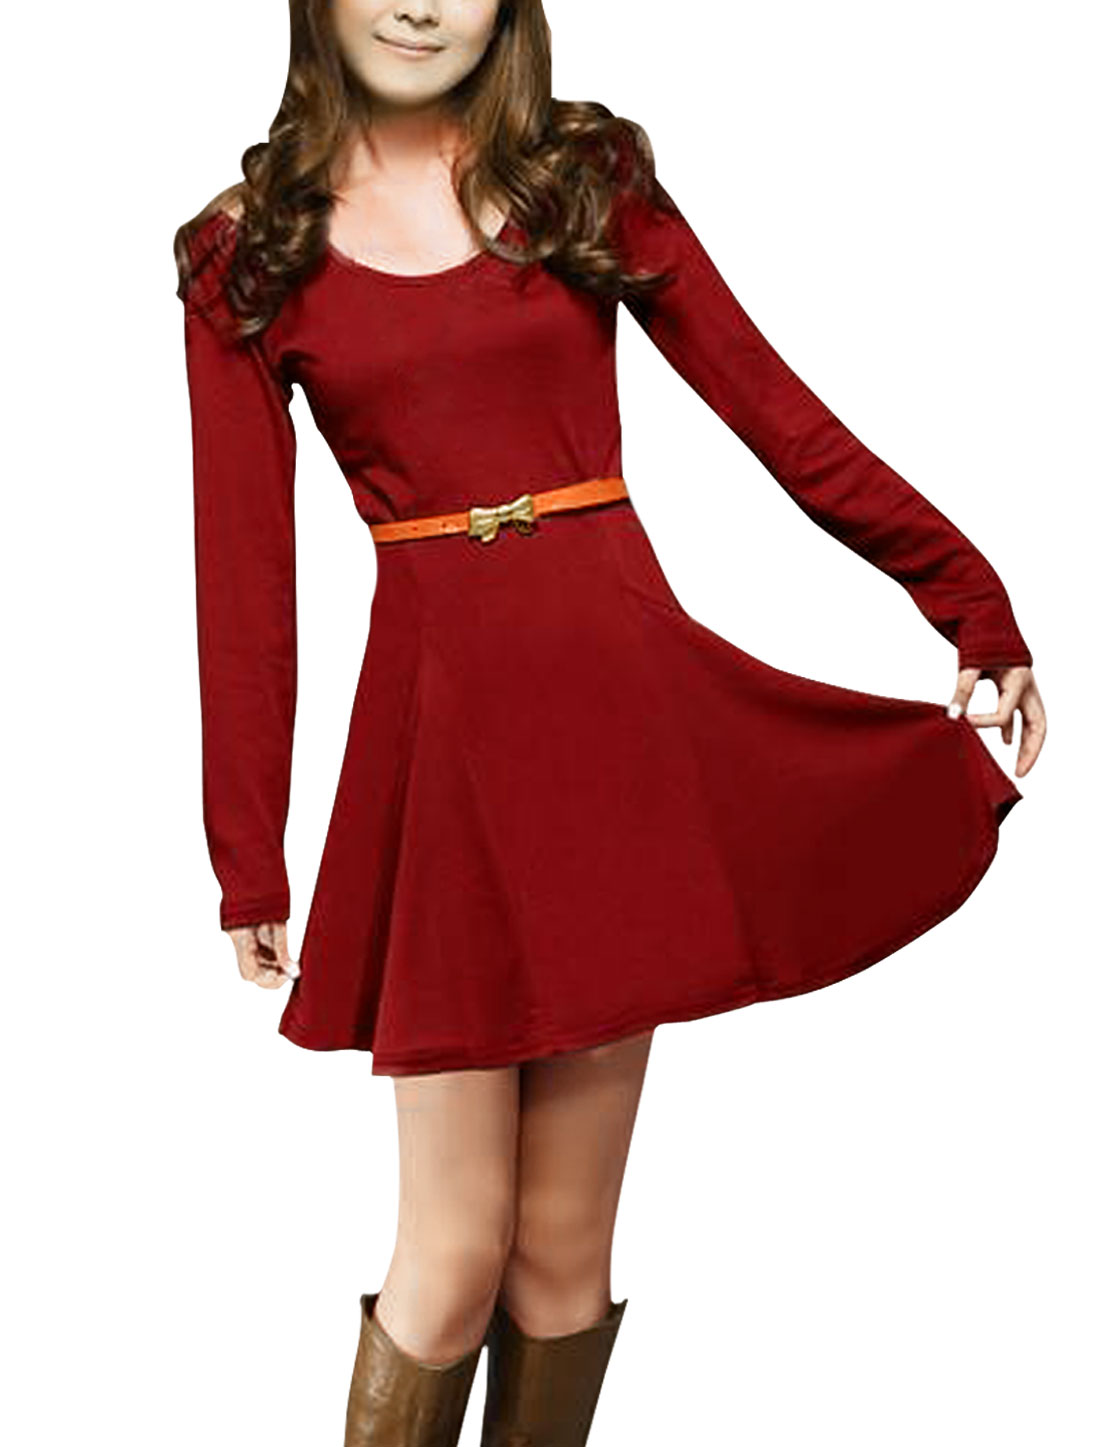 Ladies Soft Slipover Cut Out Shoulders Dress w Belt Burgundy S